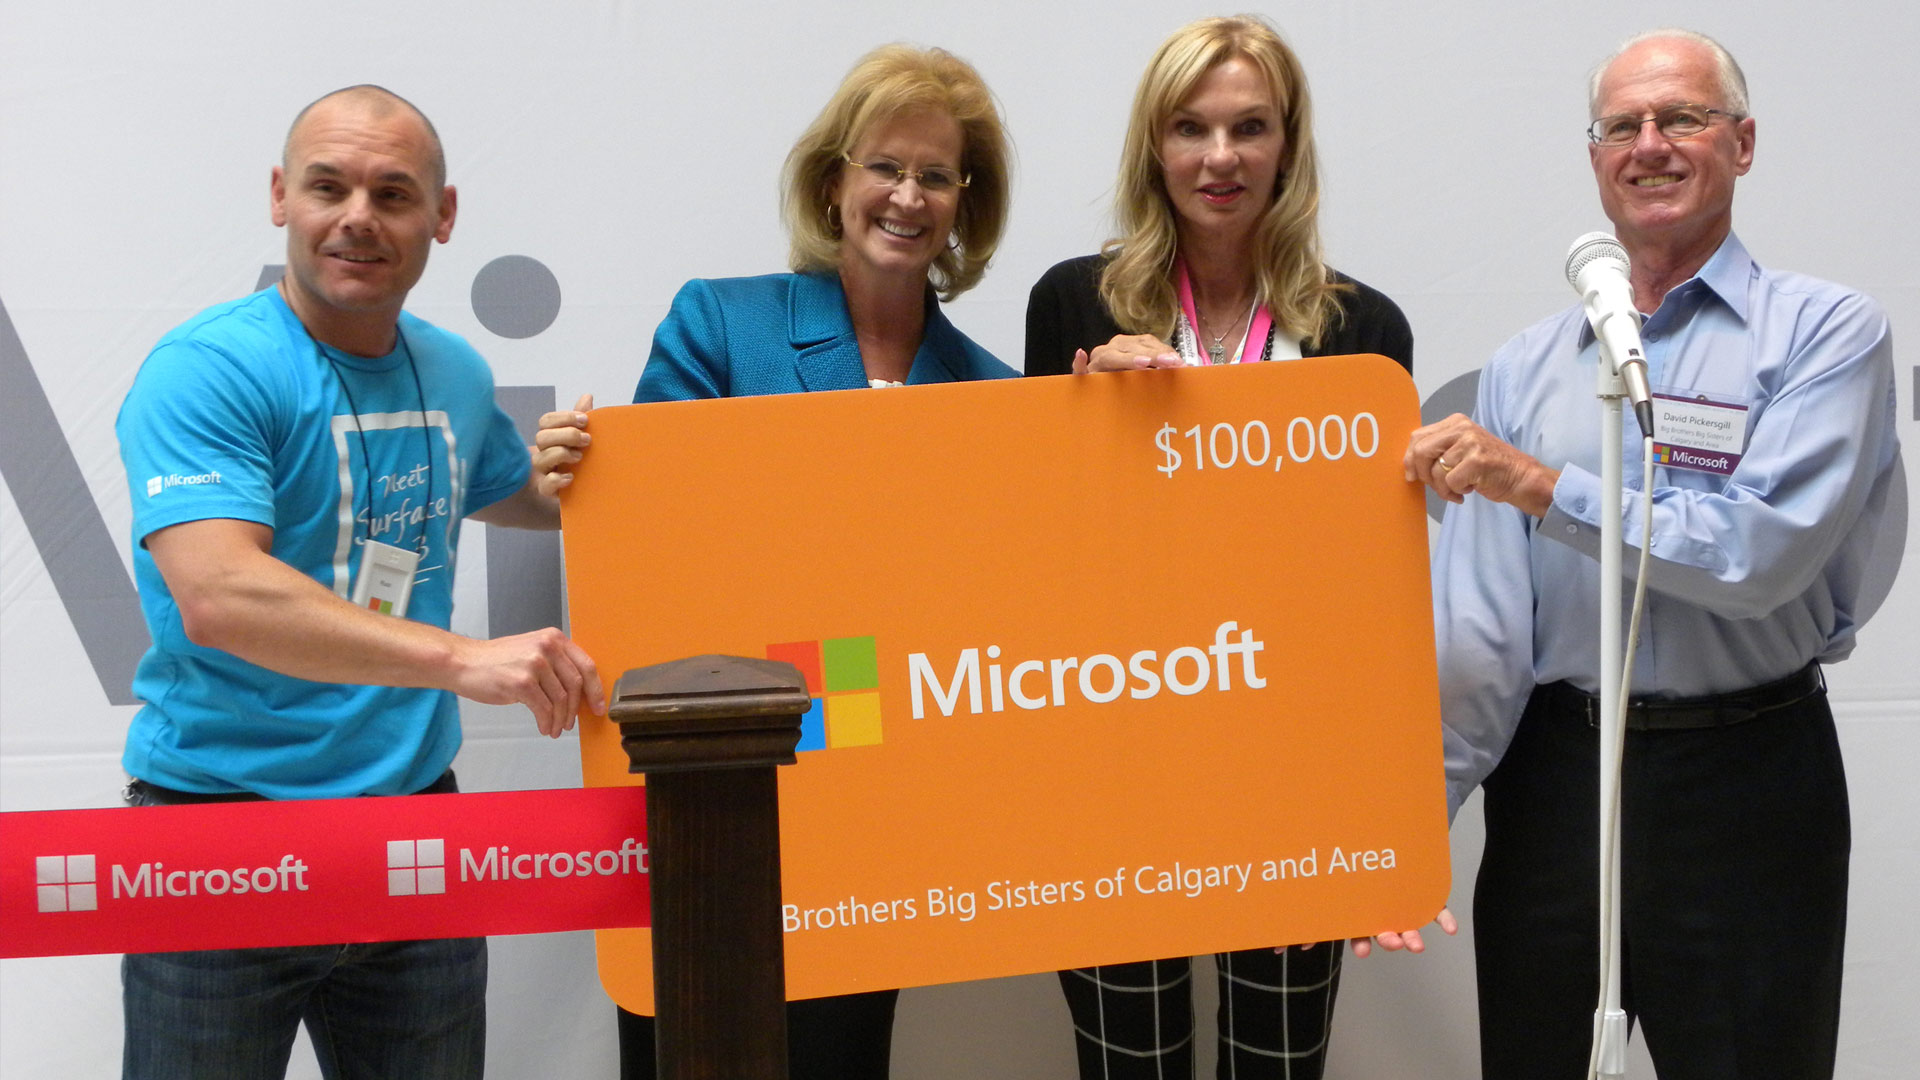 Calgary Microsoft Store Donation at Grand Opening